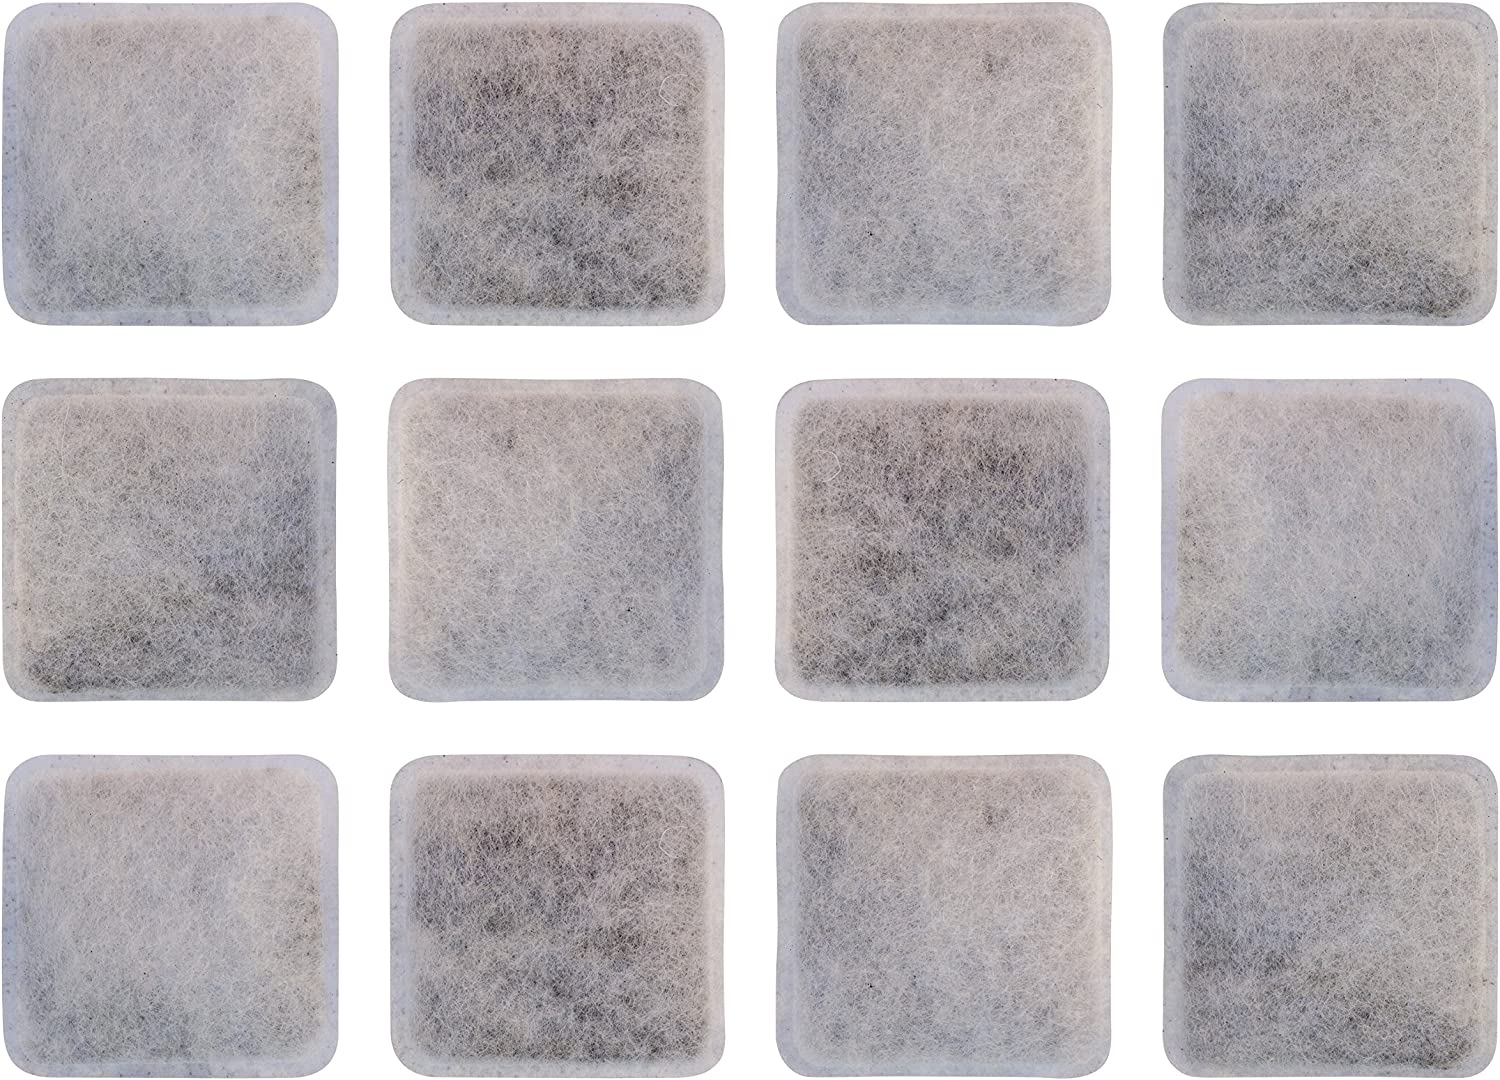 Filters for Petmate Replendish and Petmate Mason Pet Fountains, Pack of 12